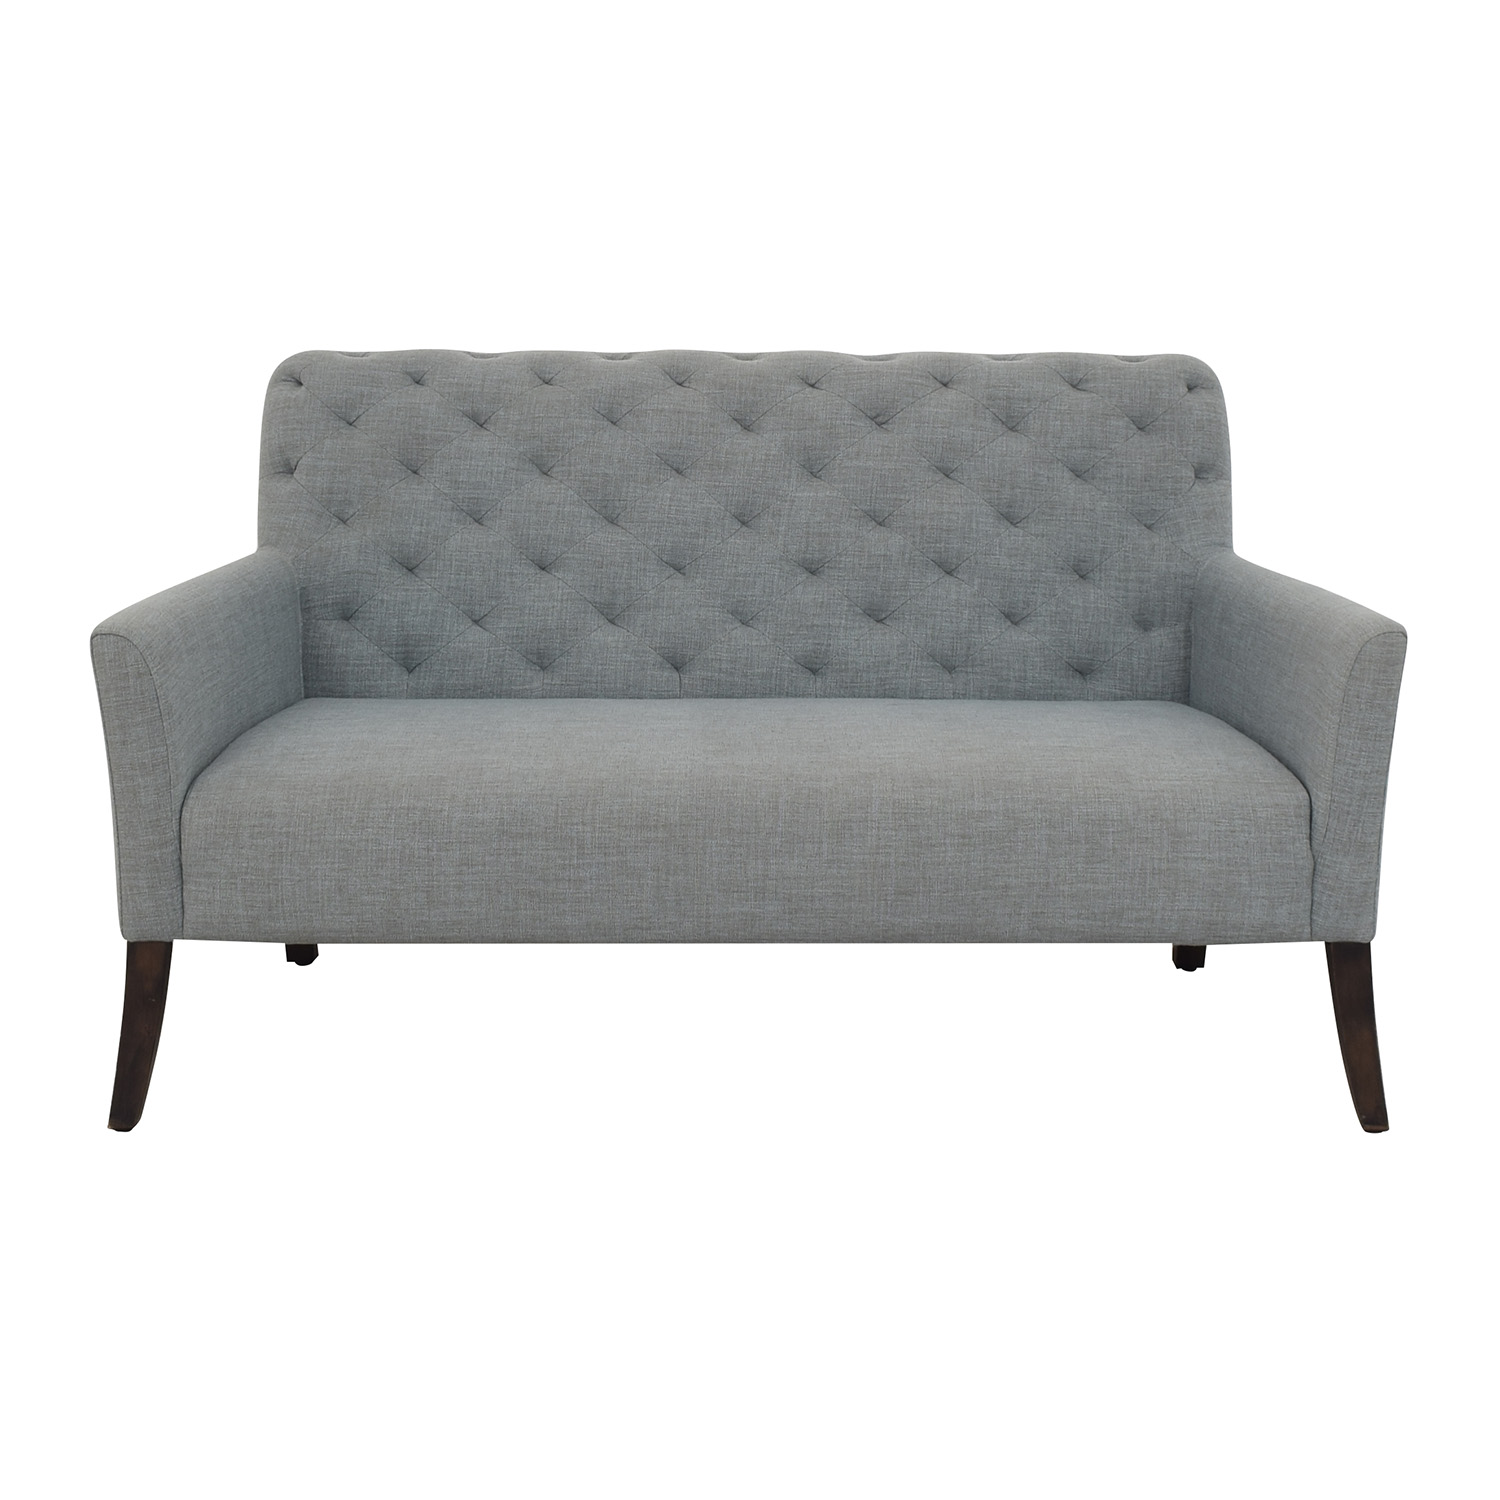 buy West Elm Elton Settee West Elm Loveseats